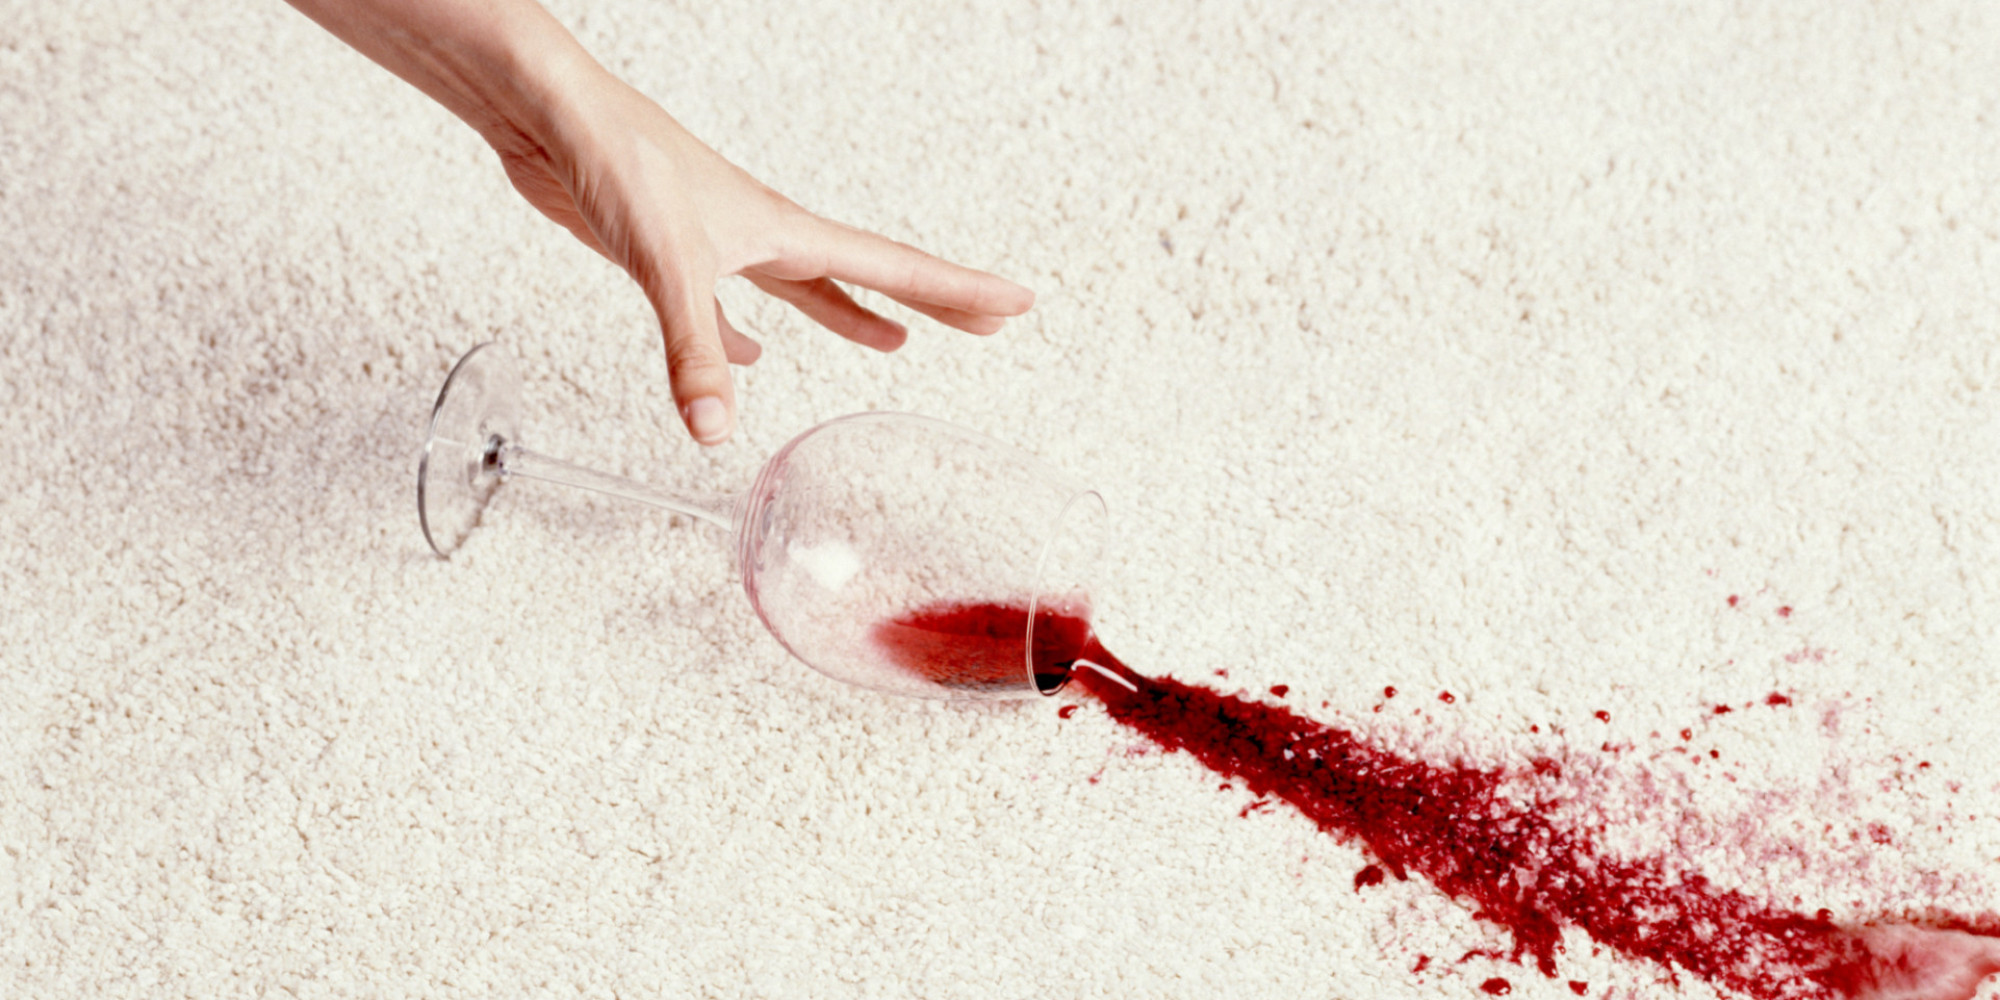 The Best Tips For Cleaning Red Wine Stains Huffpost